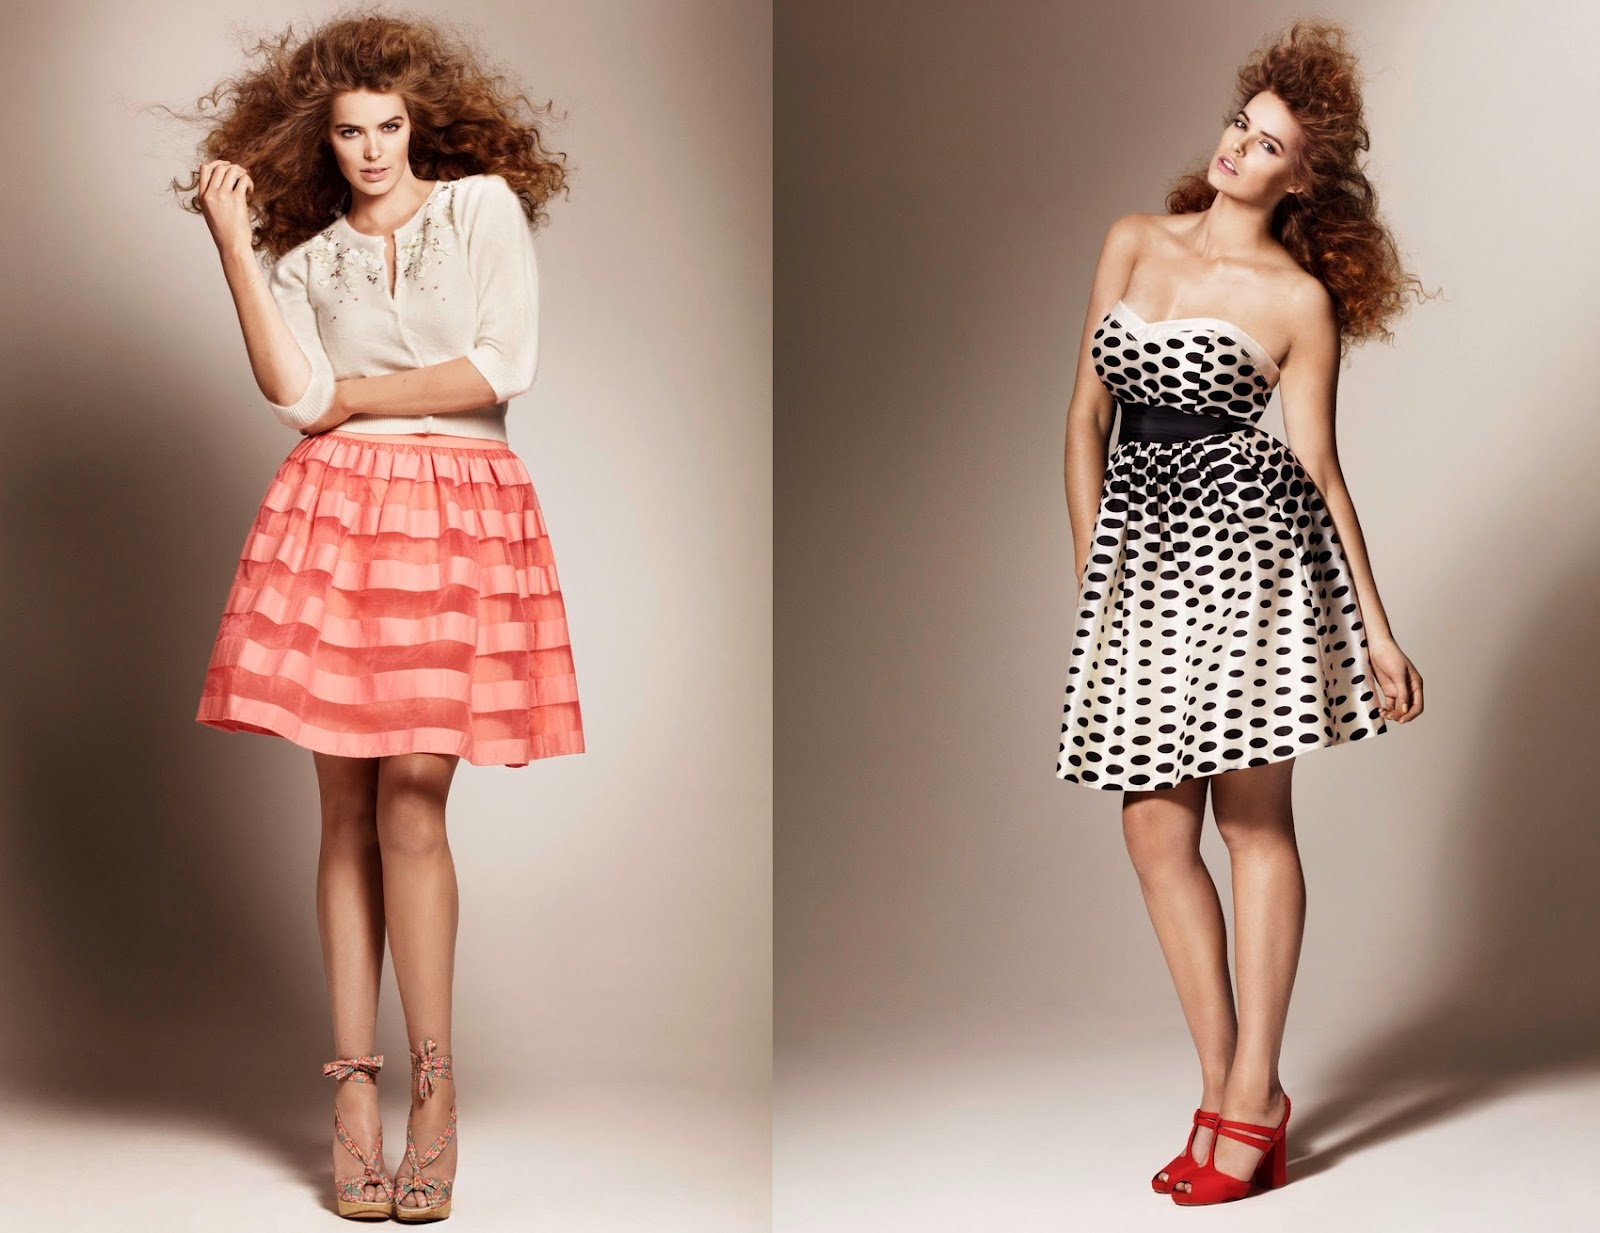 13f6461a9ace3 These plus size dress style ideas will provide you with the best  inspiration to build up an A-lister look. Boost your confidence with ...